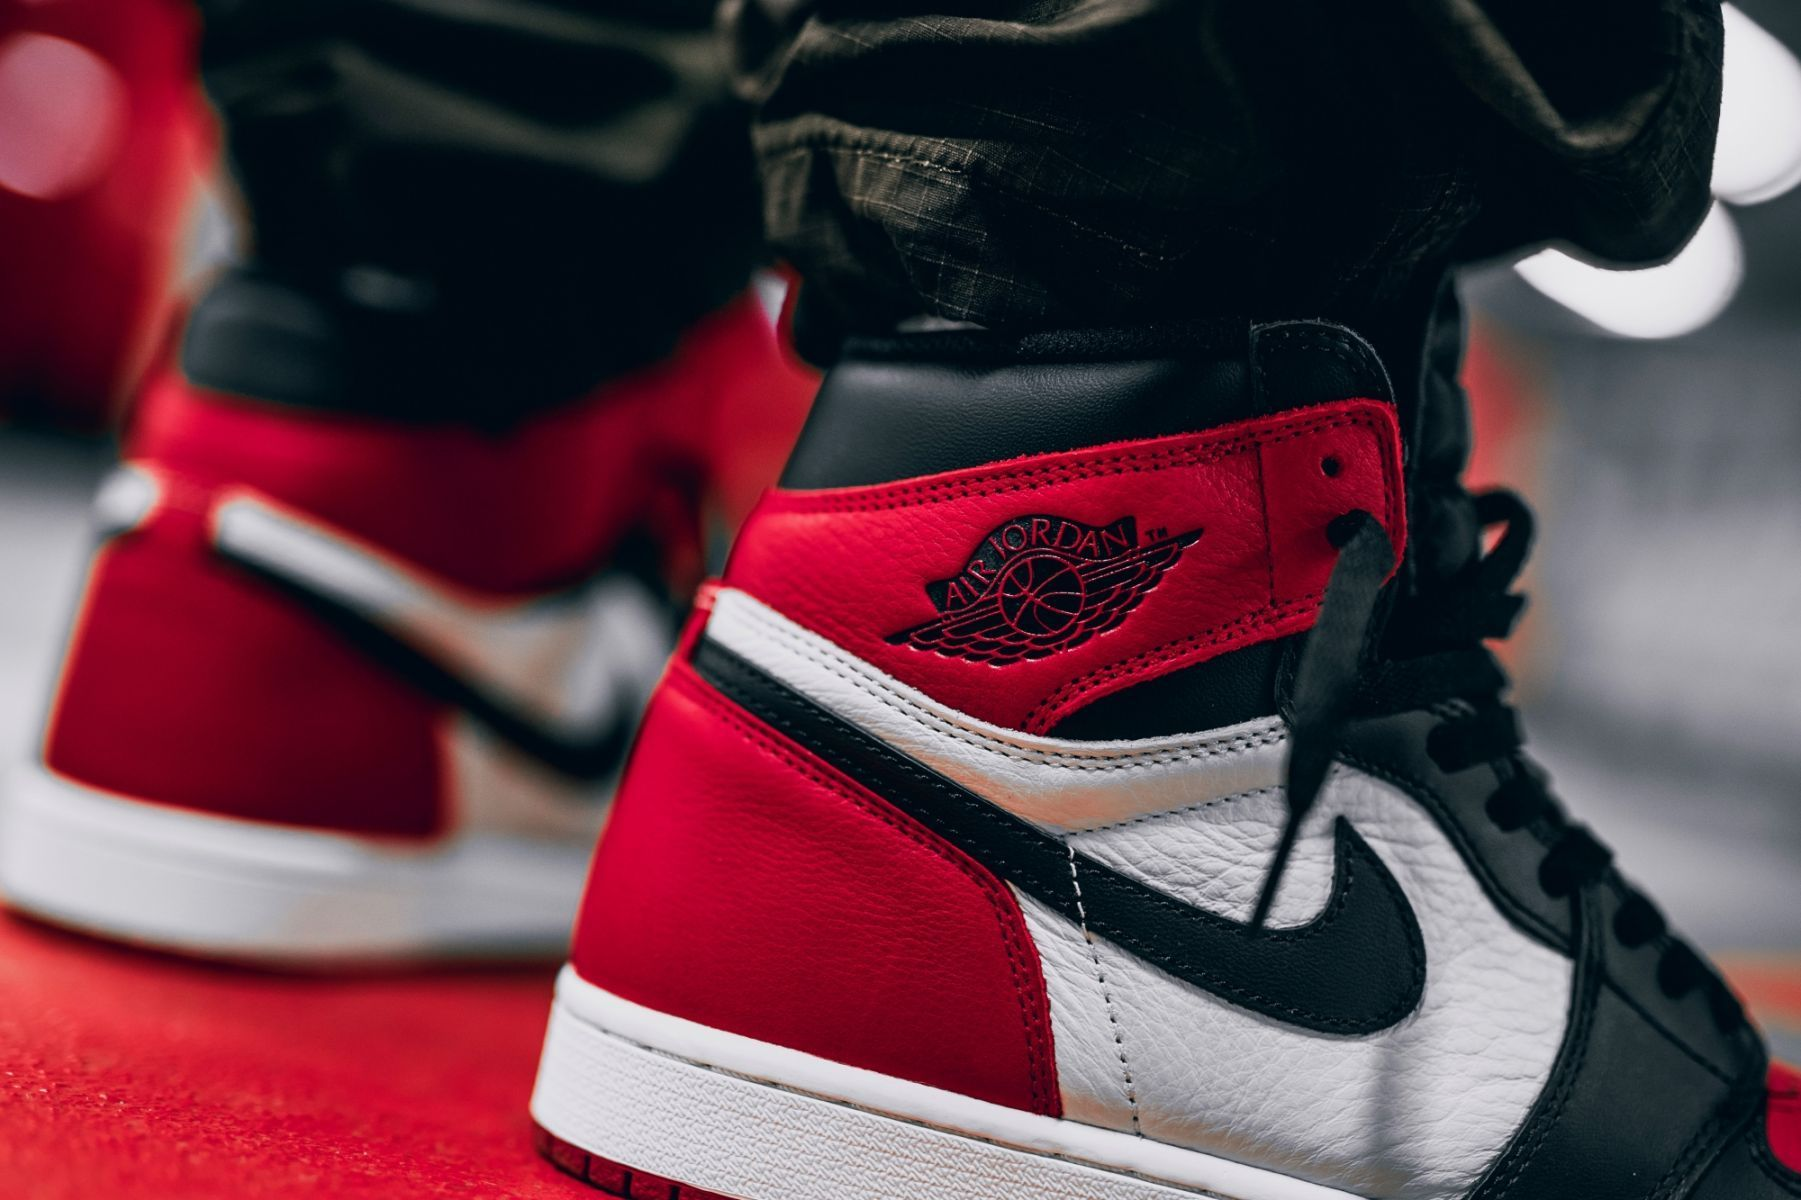 9d0d2baa2e8a Air Jordan 1 High OG Bred Toe